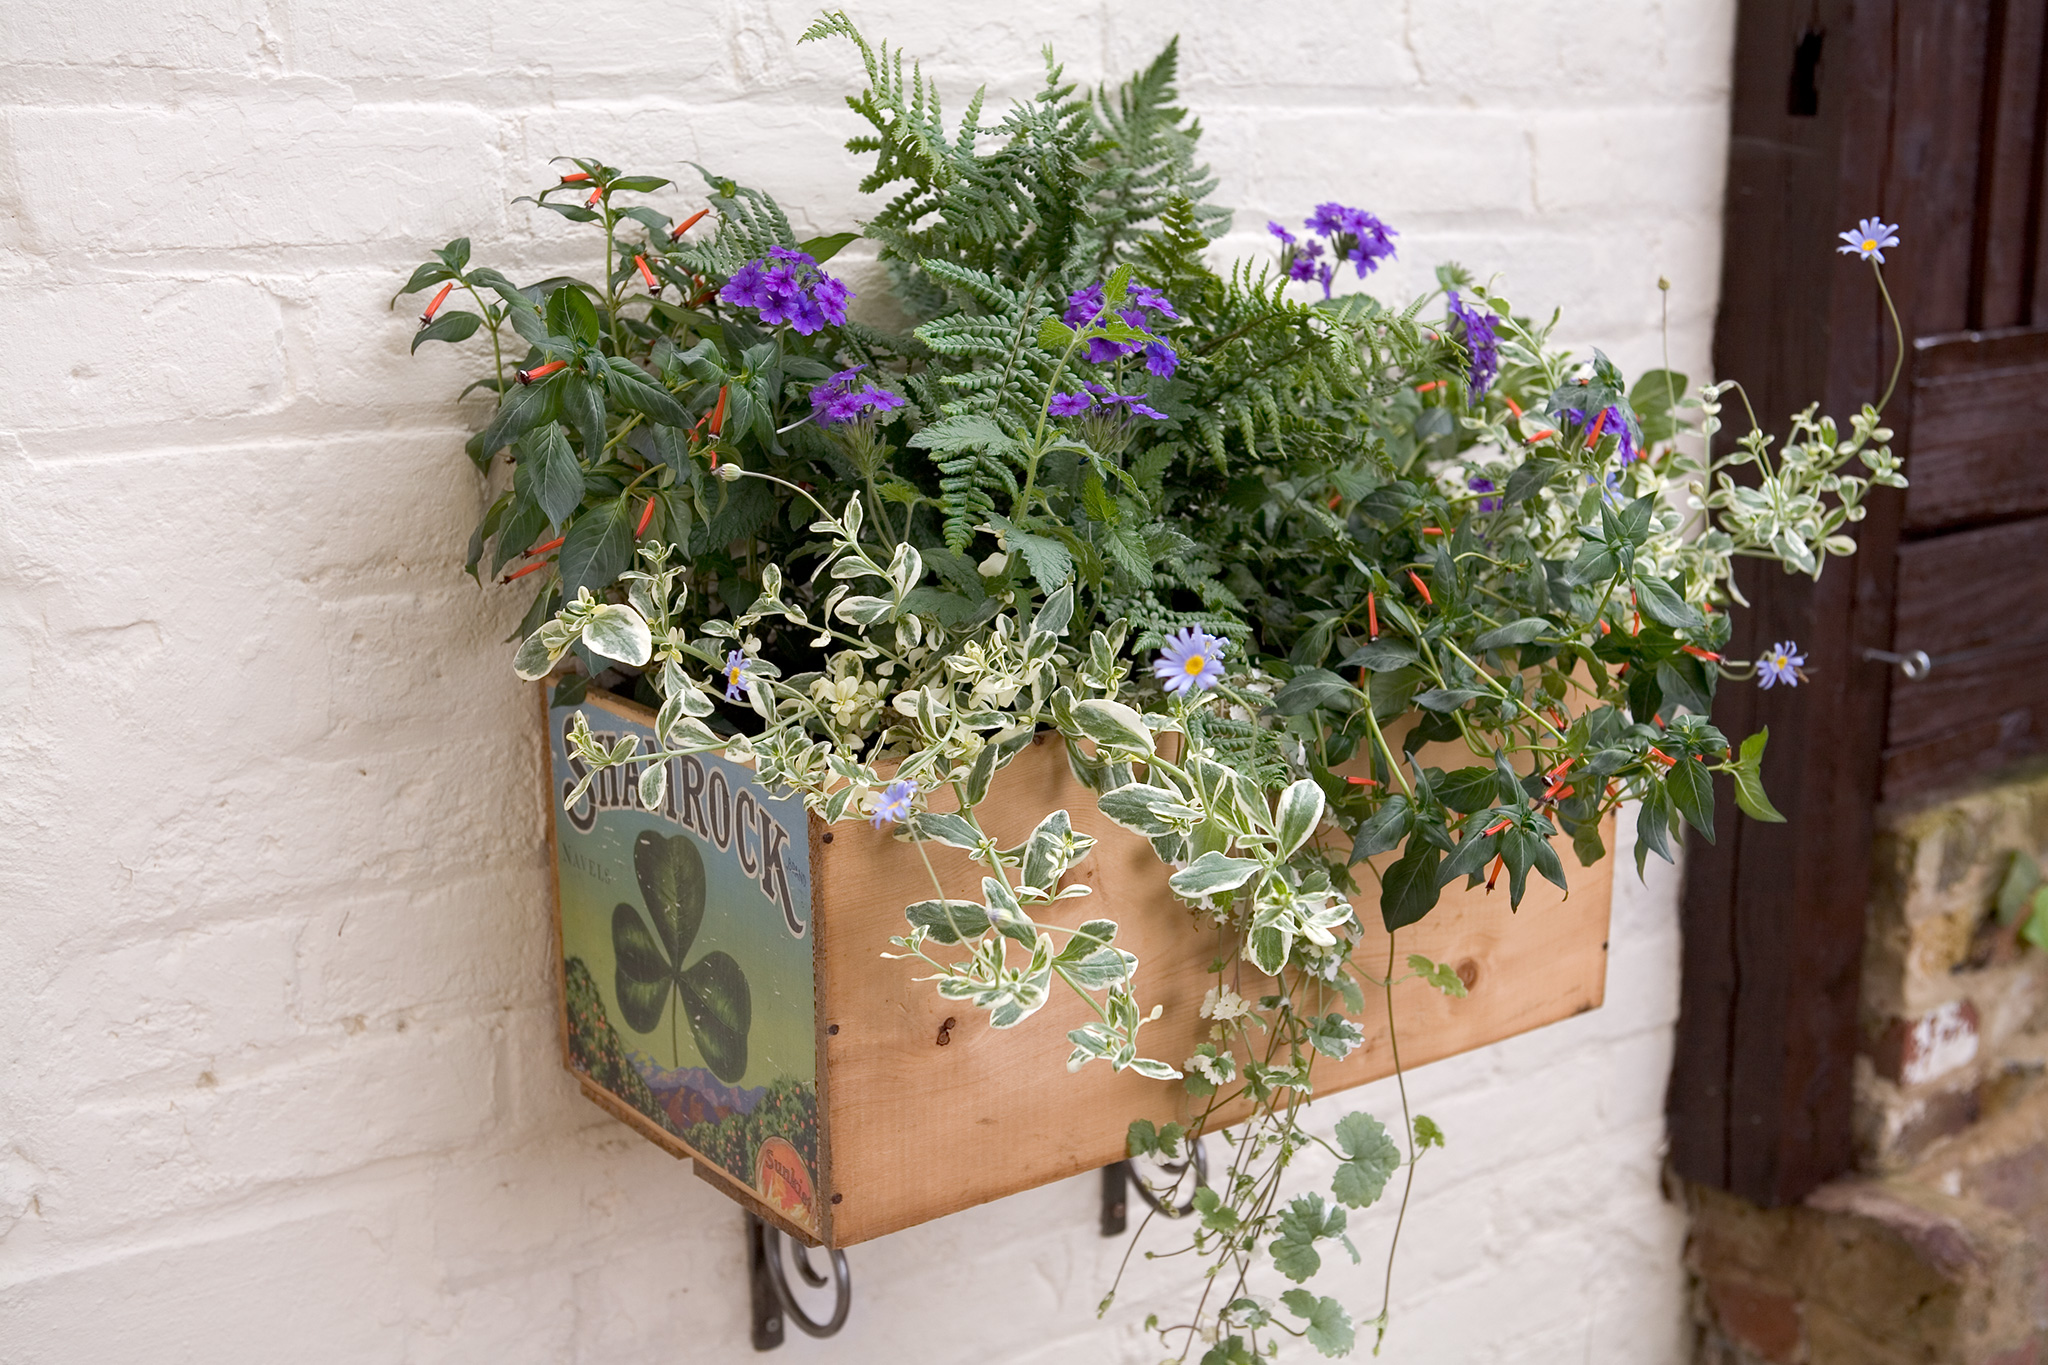 container-for-shade-planted-with-verbena-dryopteris-felicia-cuphea-and-glechoma-2